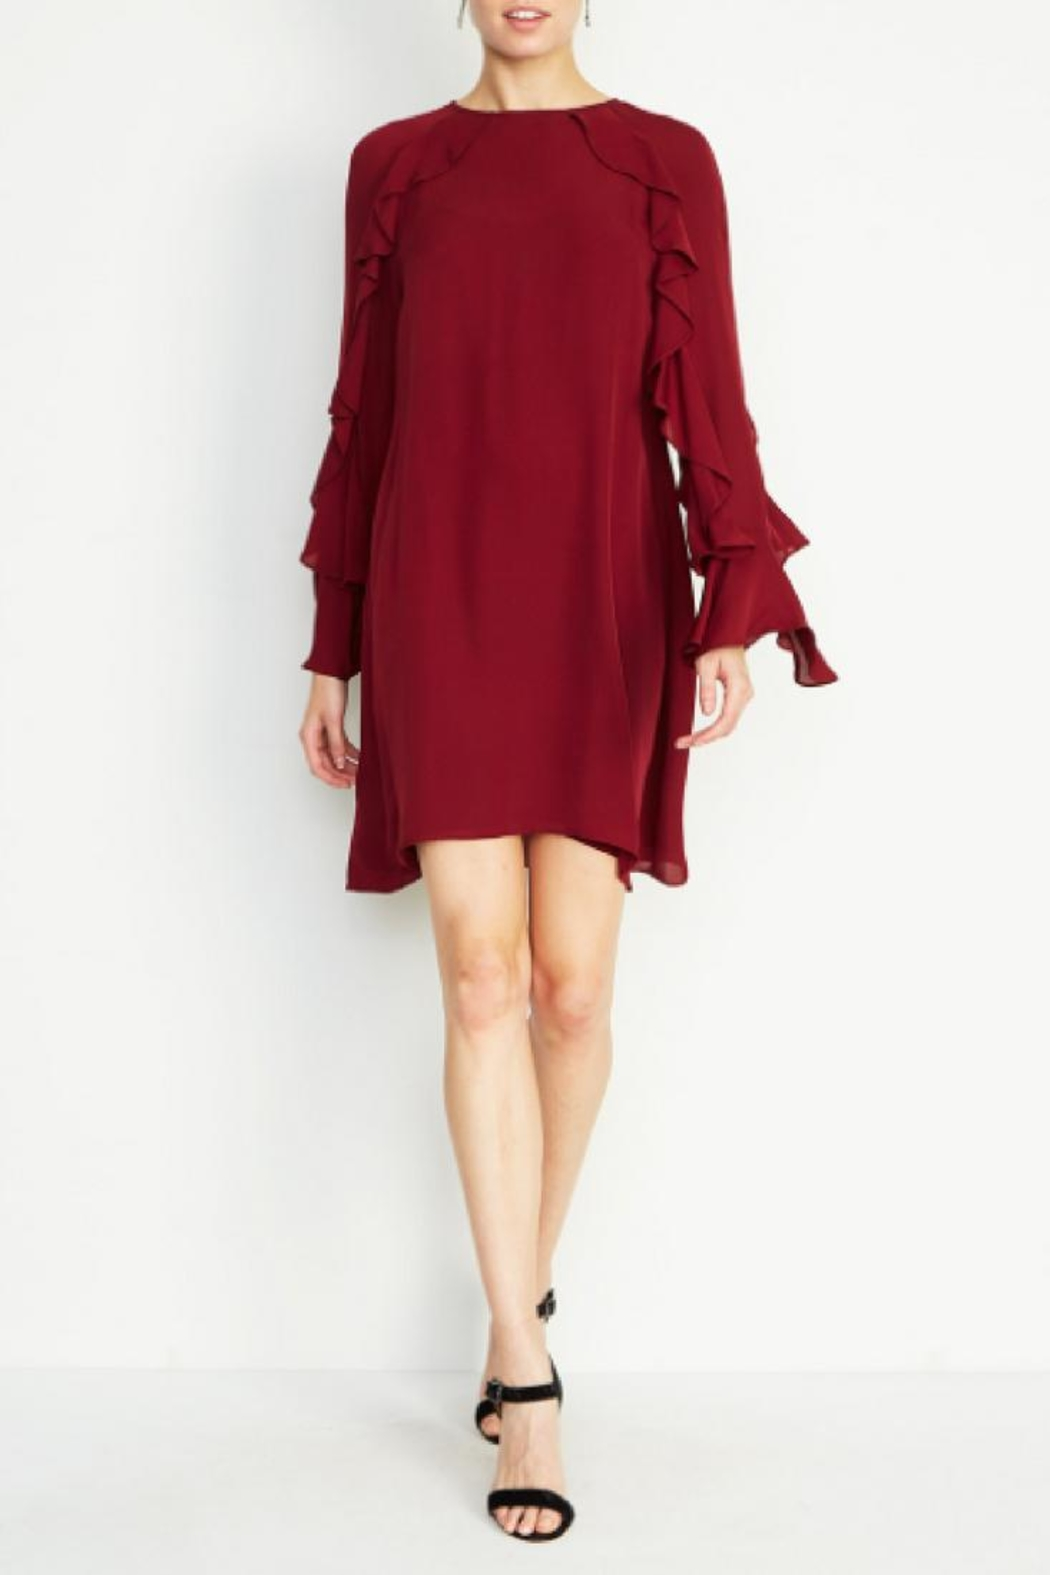 Nicole Miller Lera Bell-Sleeve Dress - Main Image